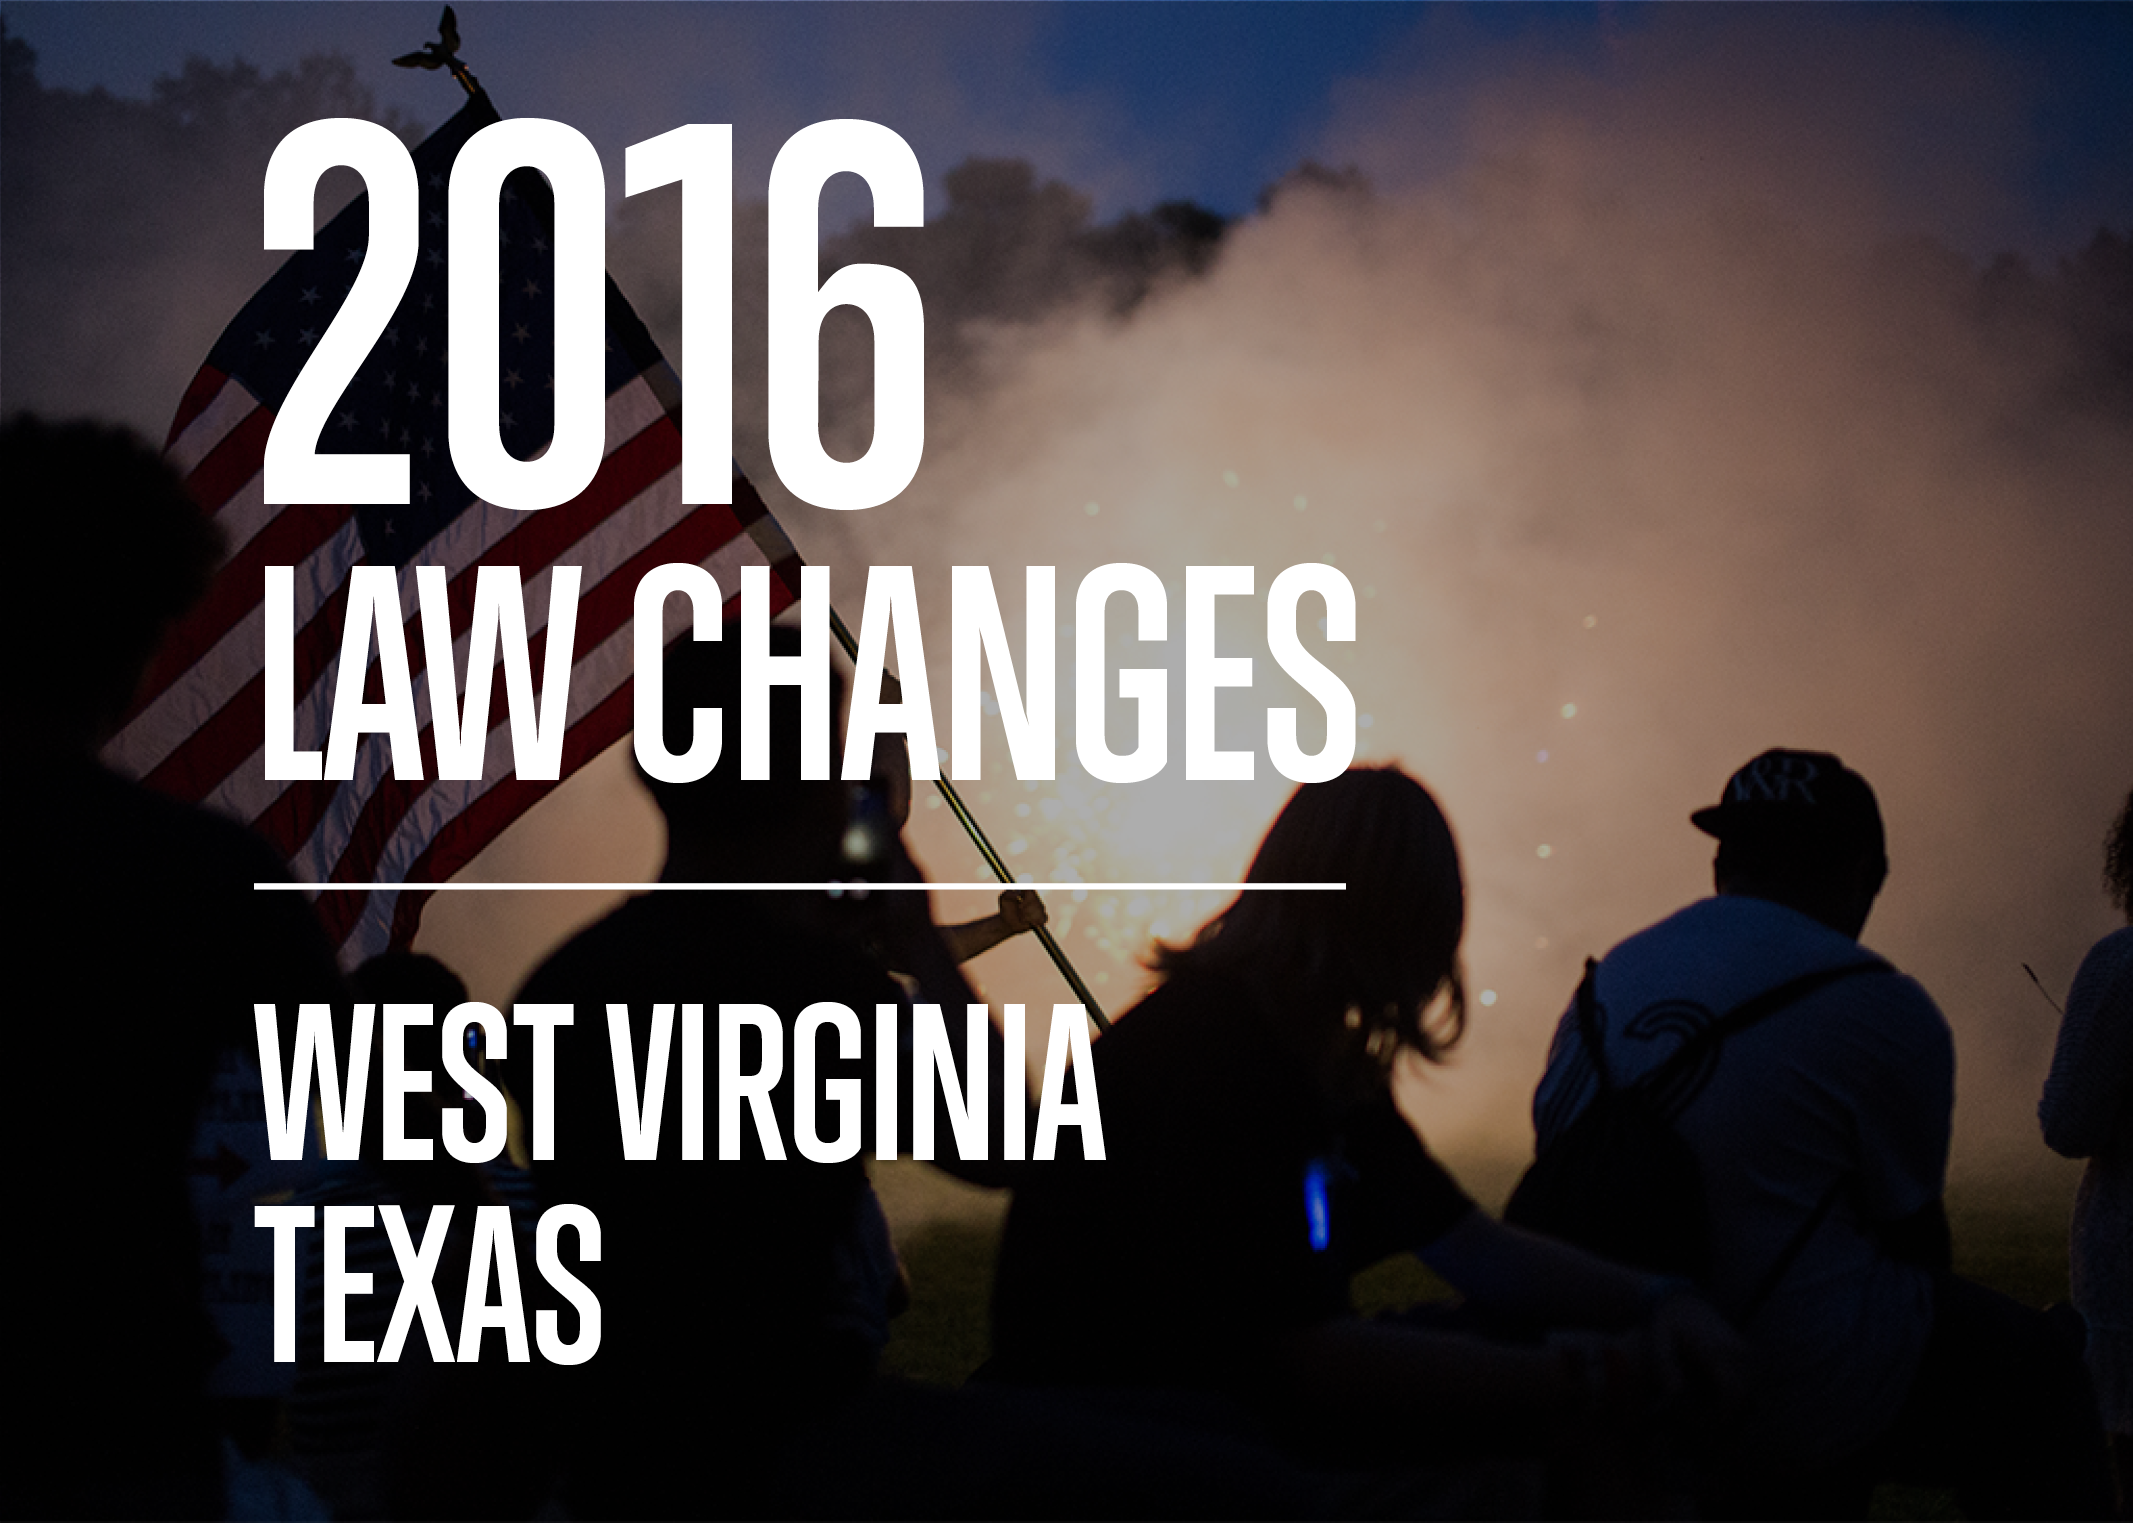 2016 Fireworks Law Changes - West Virginia, Texas